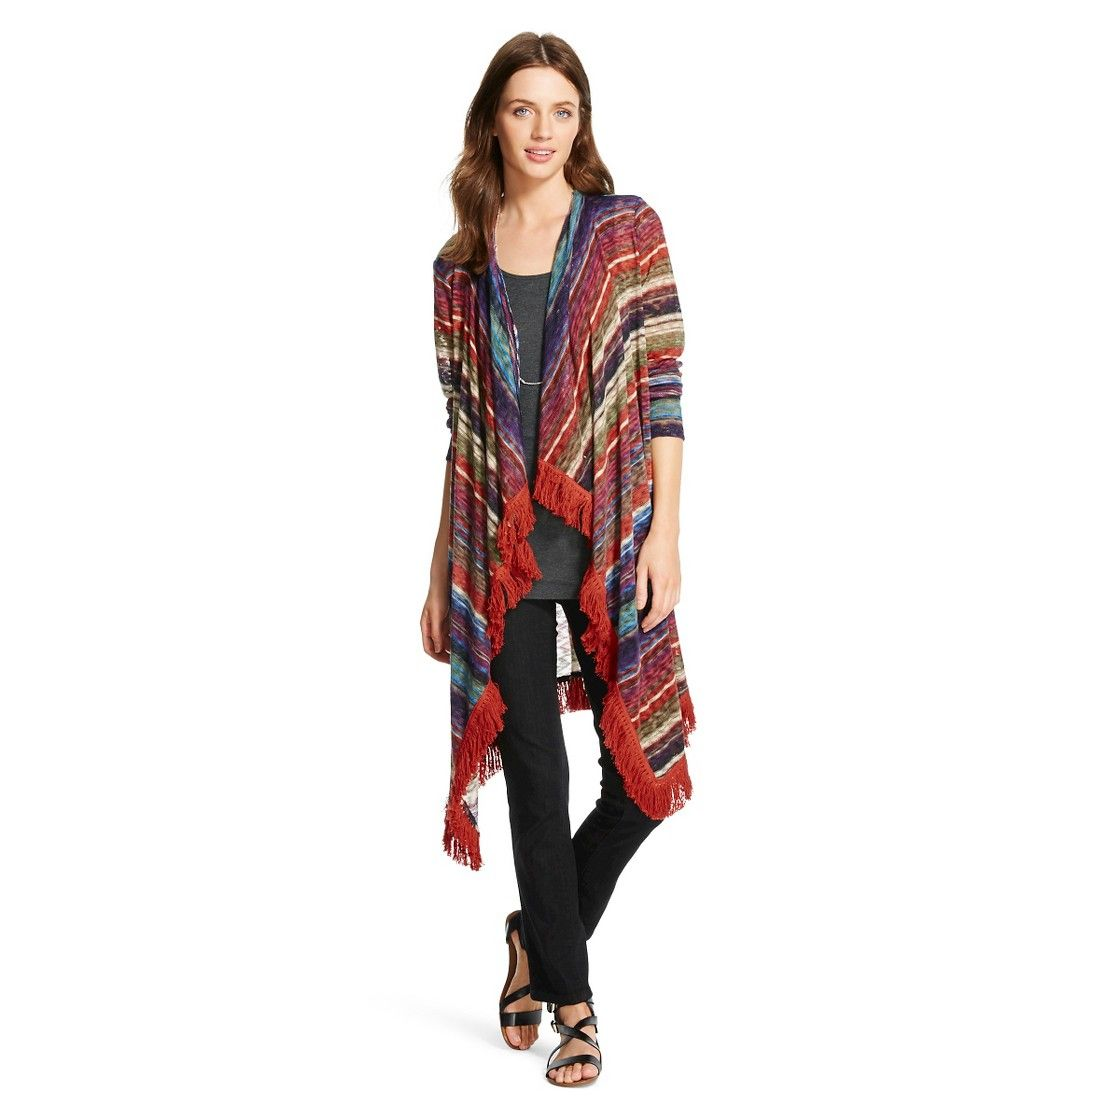 Women's Striped Sweater Cardigan - John Paul Richard | WISH LIST ...